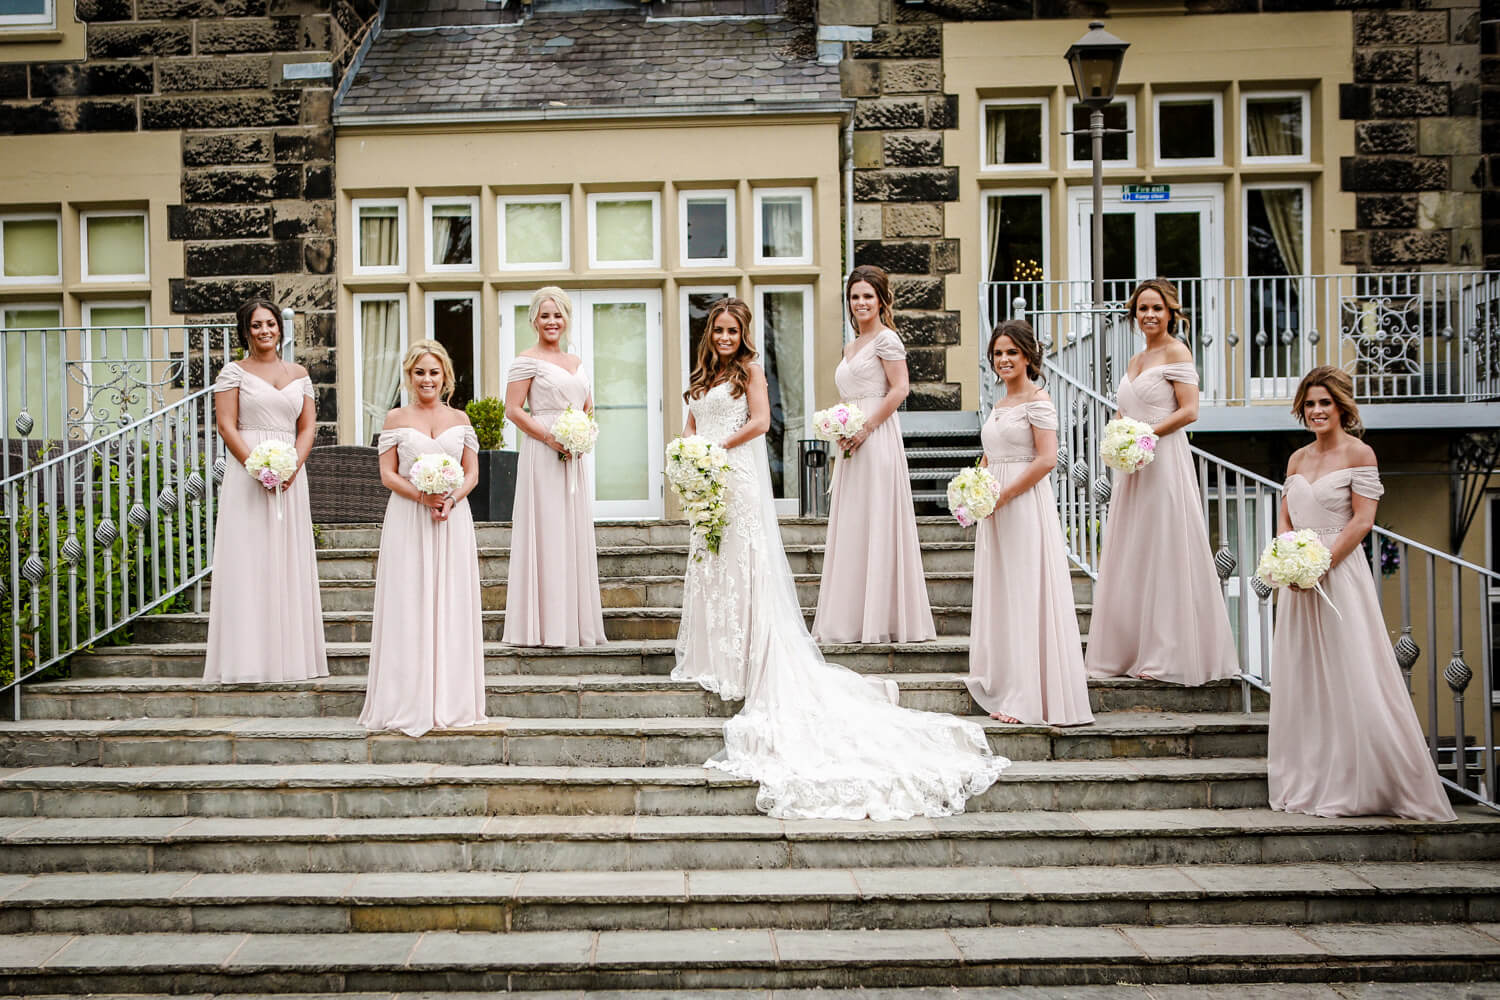 Bridal party photo bride and bridesmaids on steps